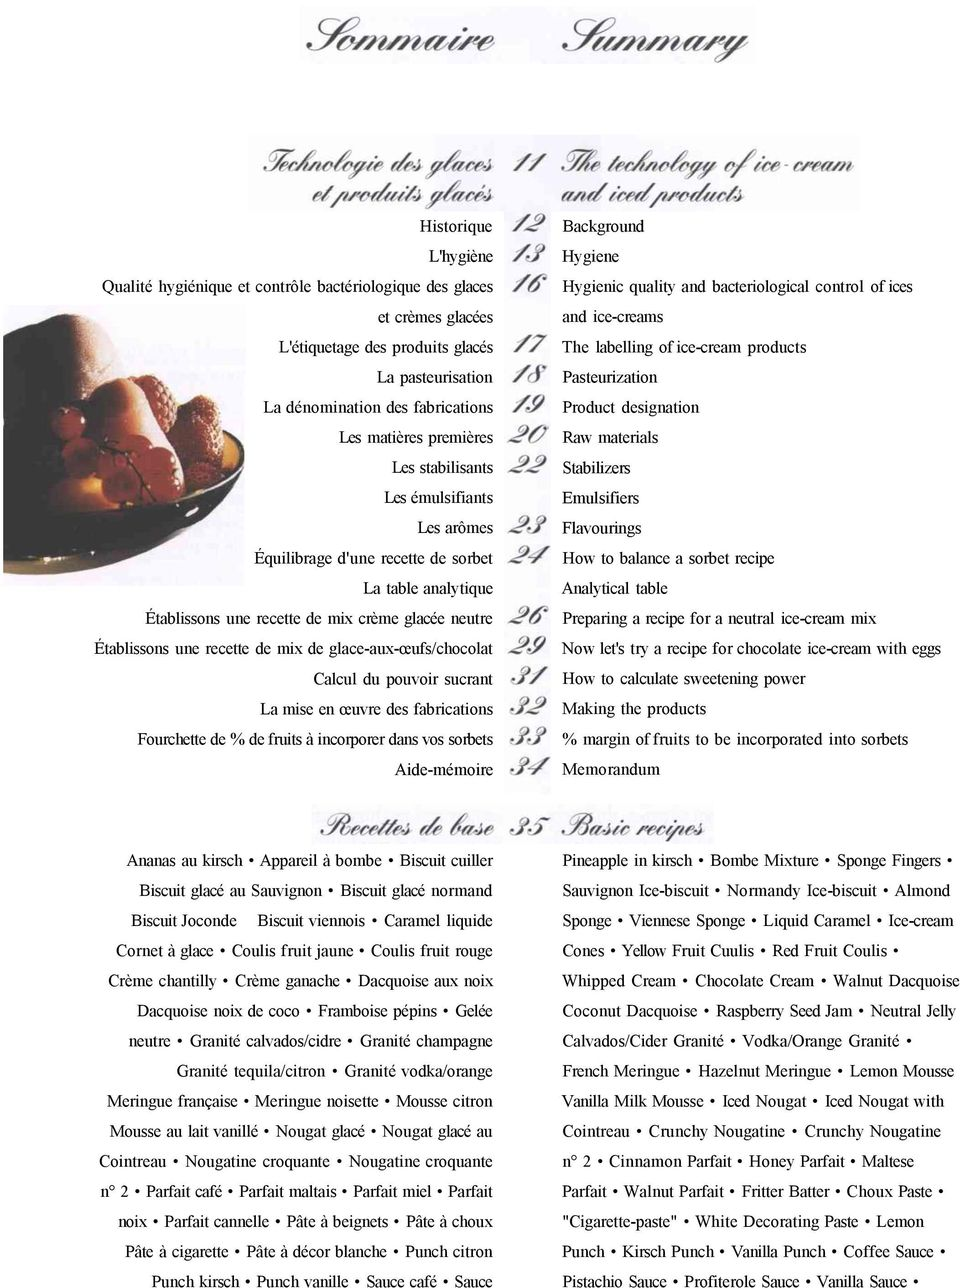 glace-aux-œufs/chocolat Calcul du pouvoir sucrant La mise en œuvre des fabrications Fourchette de % de fruits à incorporer dans vos sorbets Aide-mémoire Background Hygiene Hygienic quality and